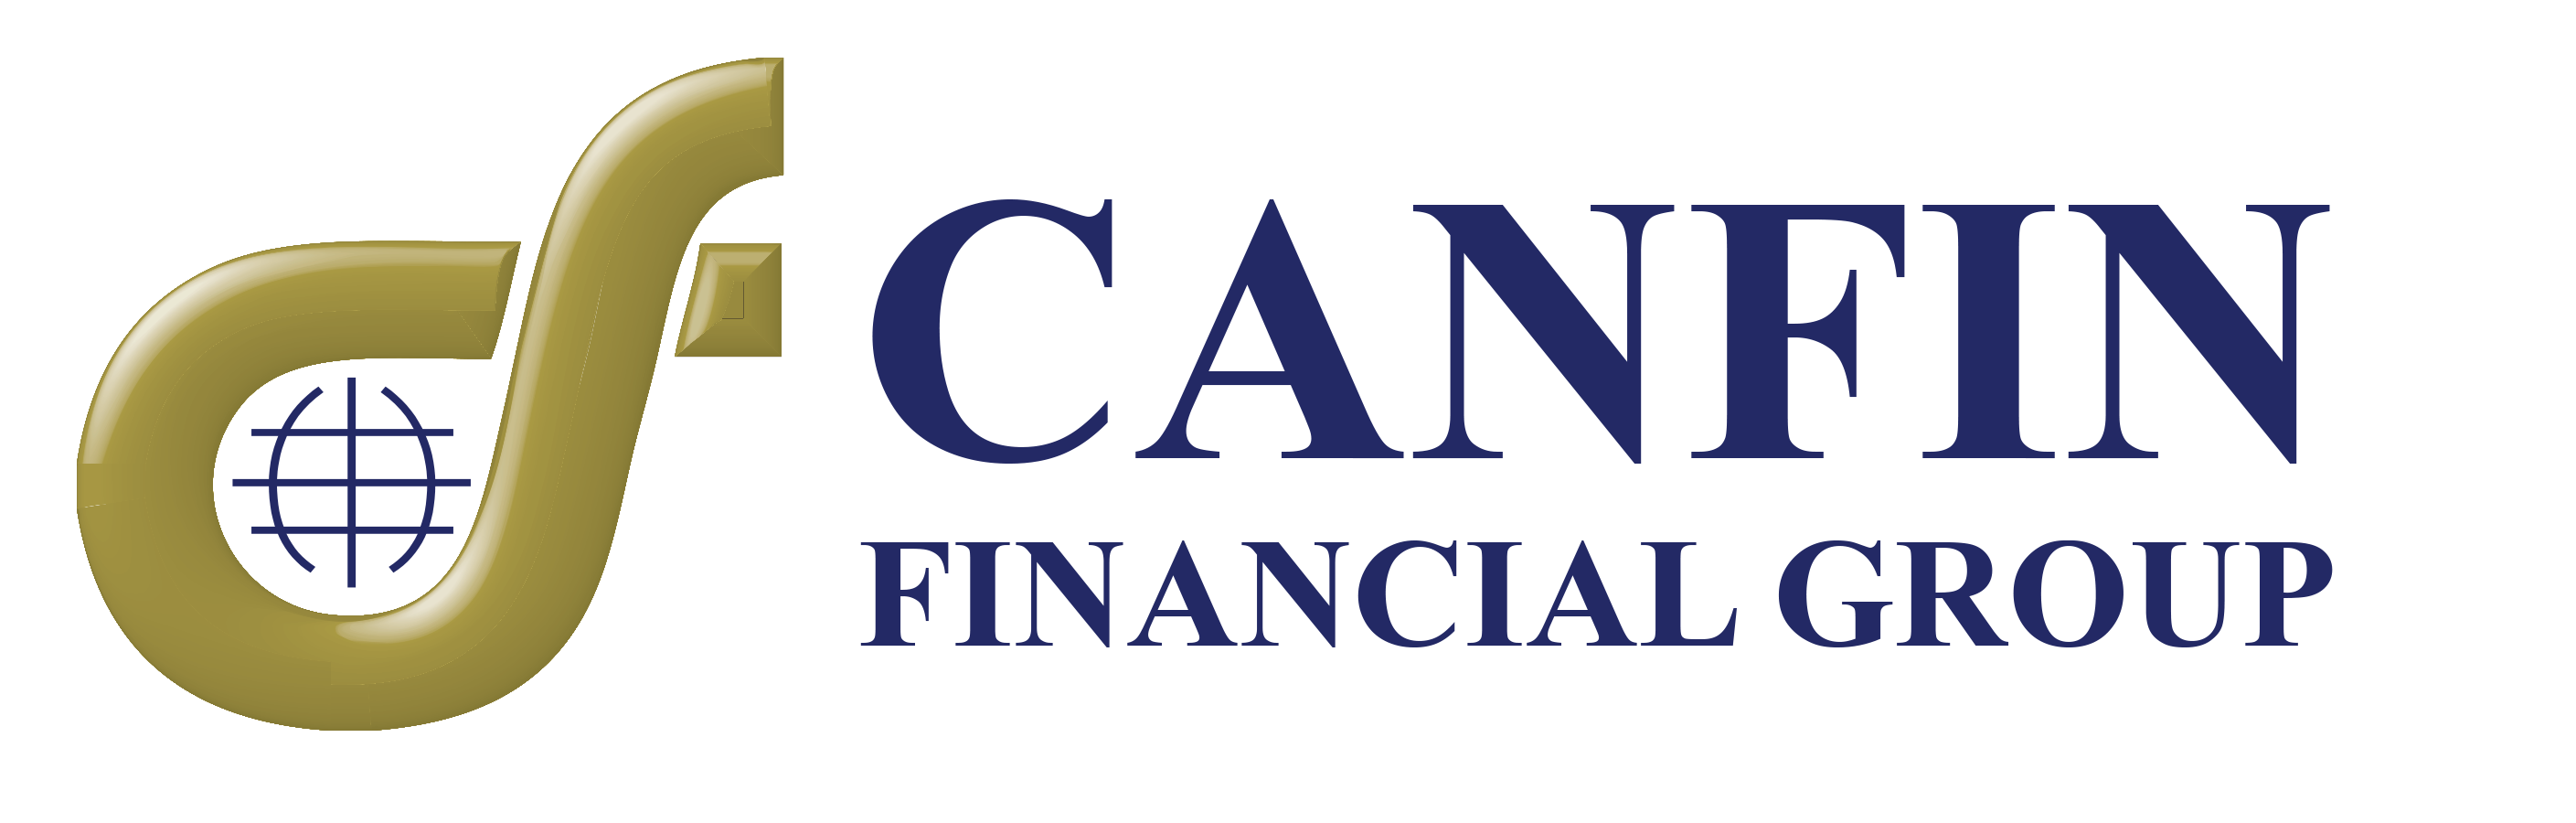 Colin Barry - CANFIN Financial Group - Logo